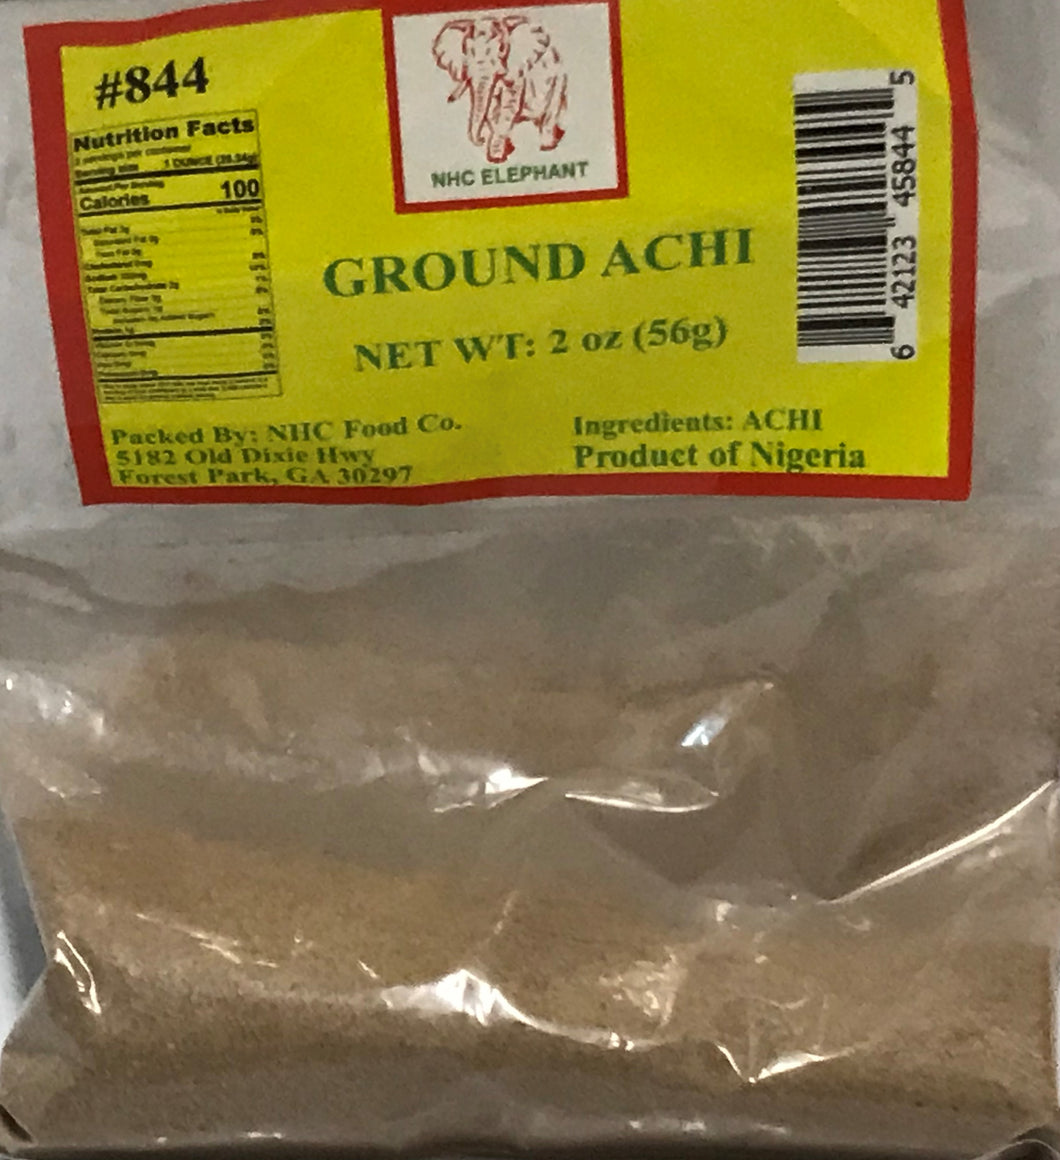 NHC Elephant Ground Achi 2oz